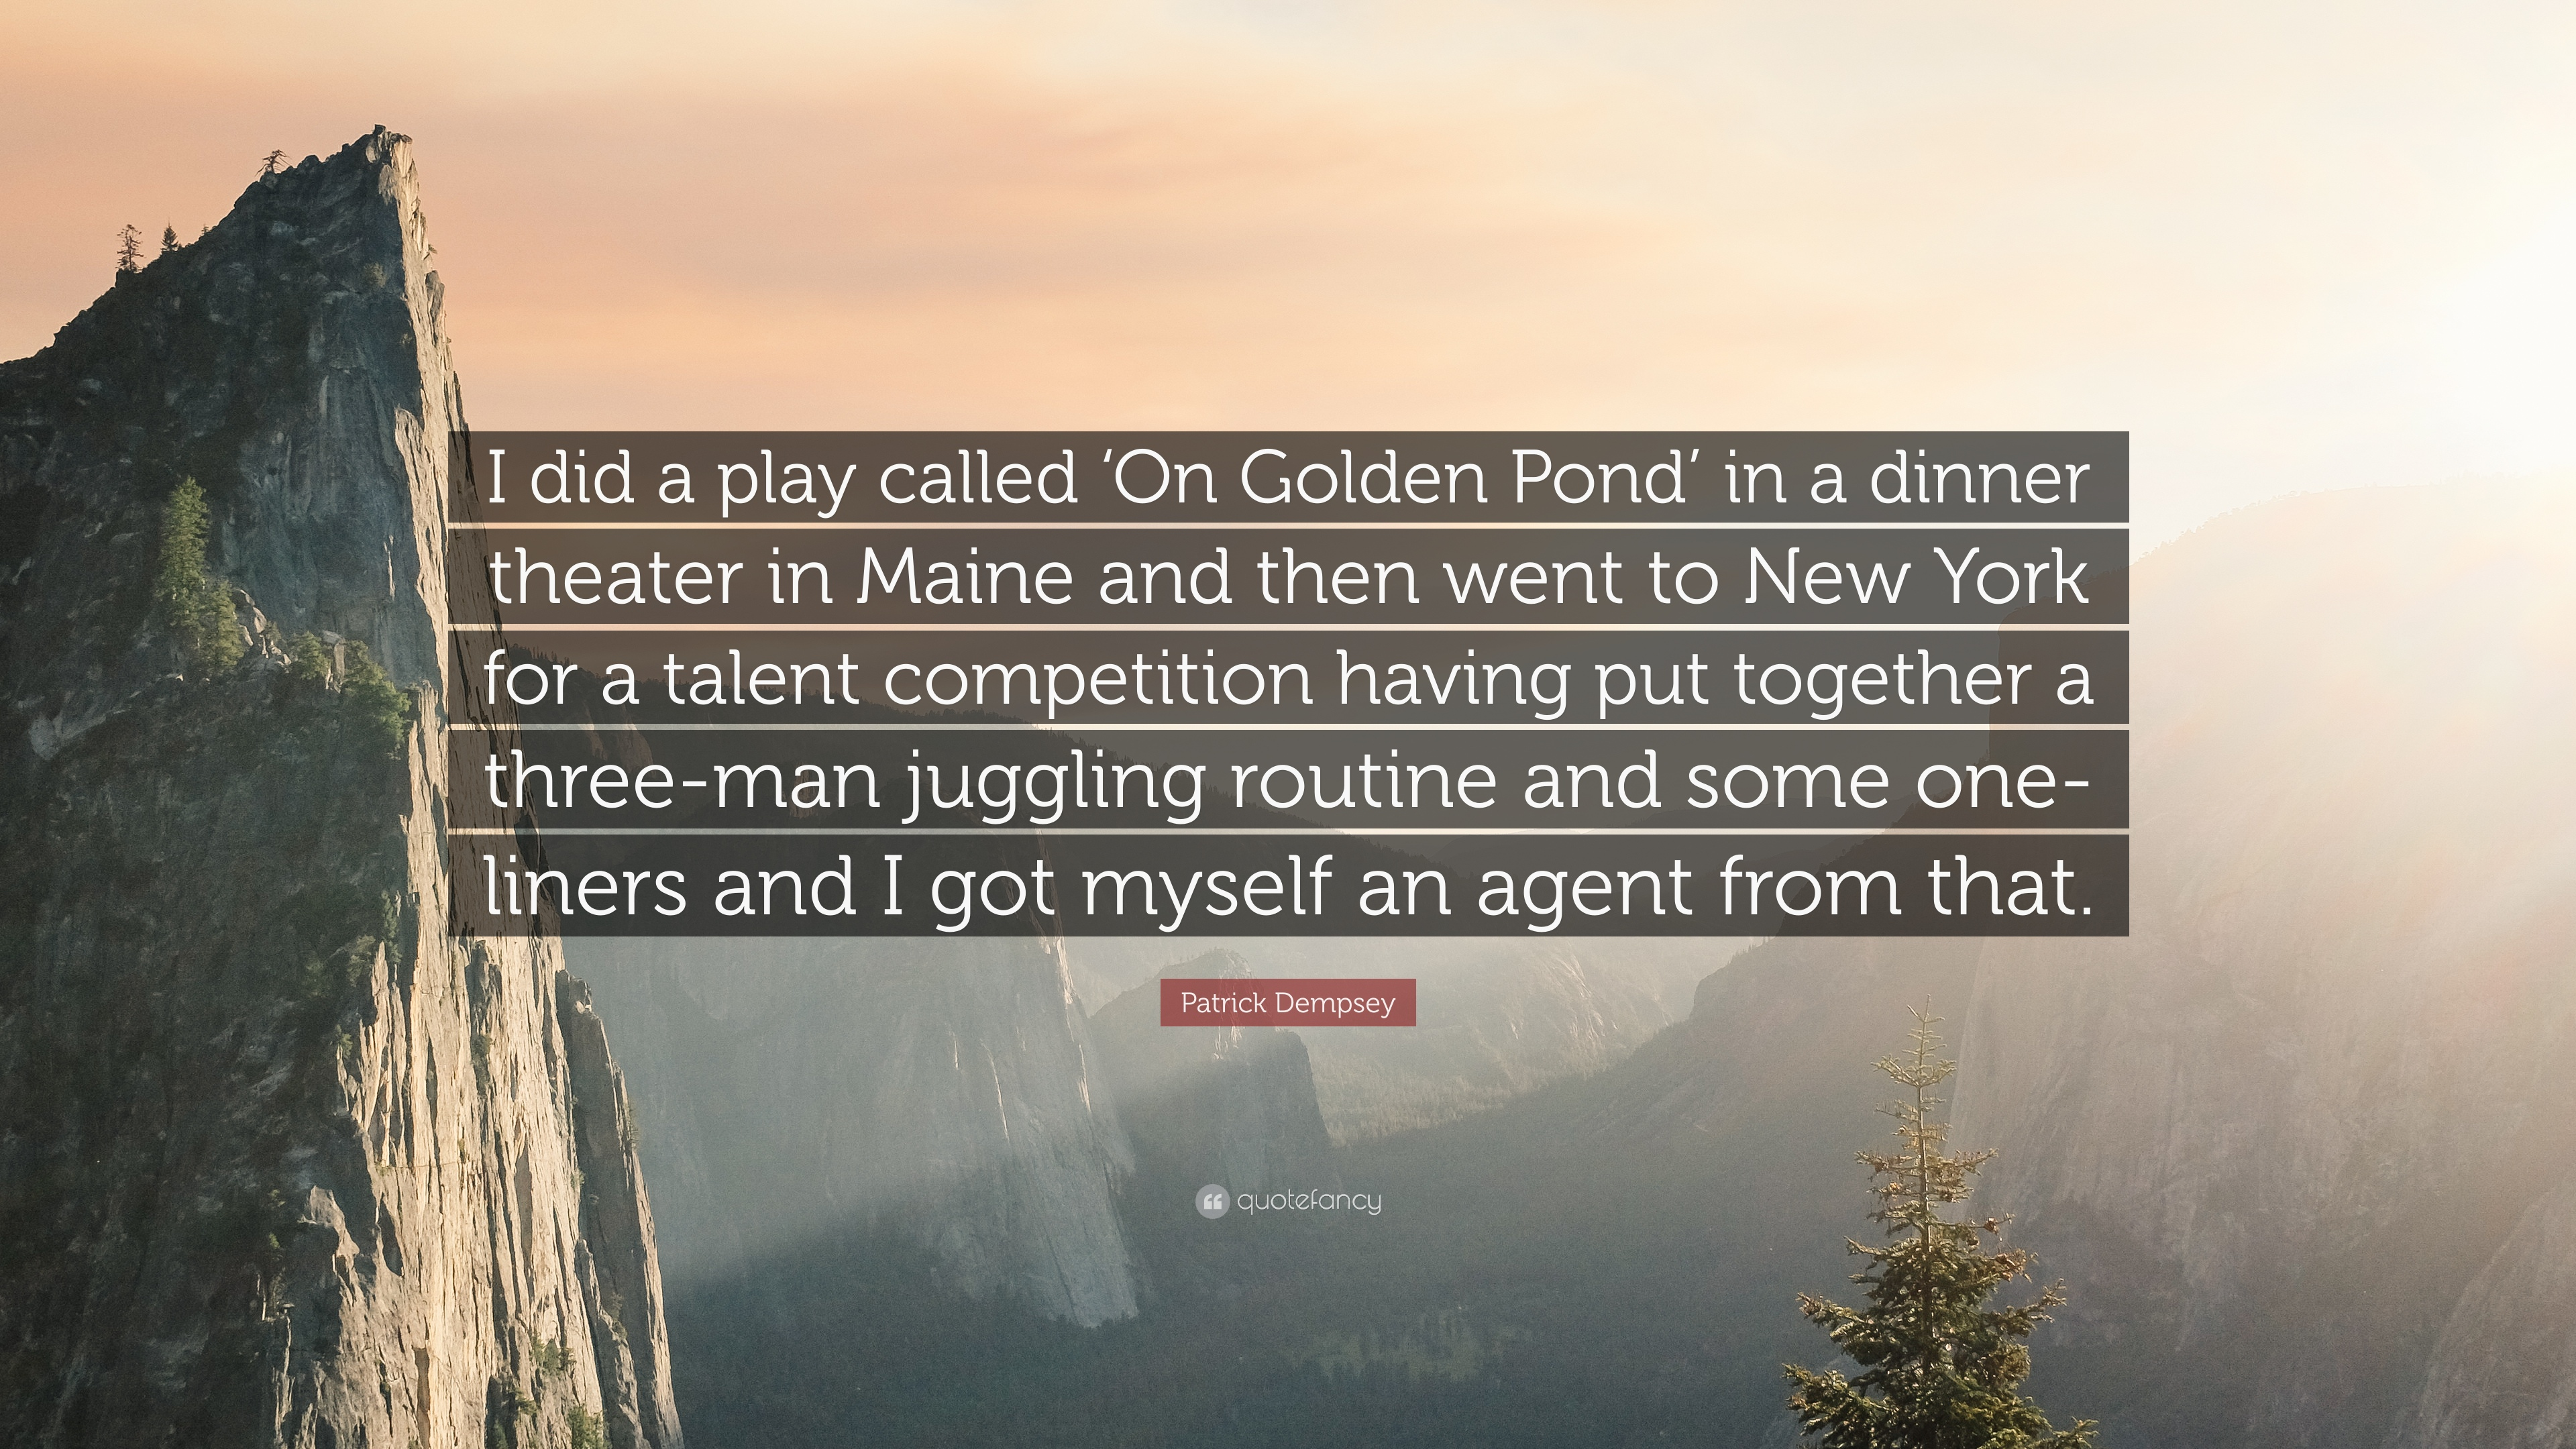 Prhsx Quote On Golden Pond Quotes Delectable On Golden Pond Quotes Image